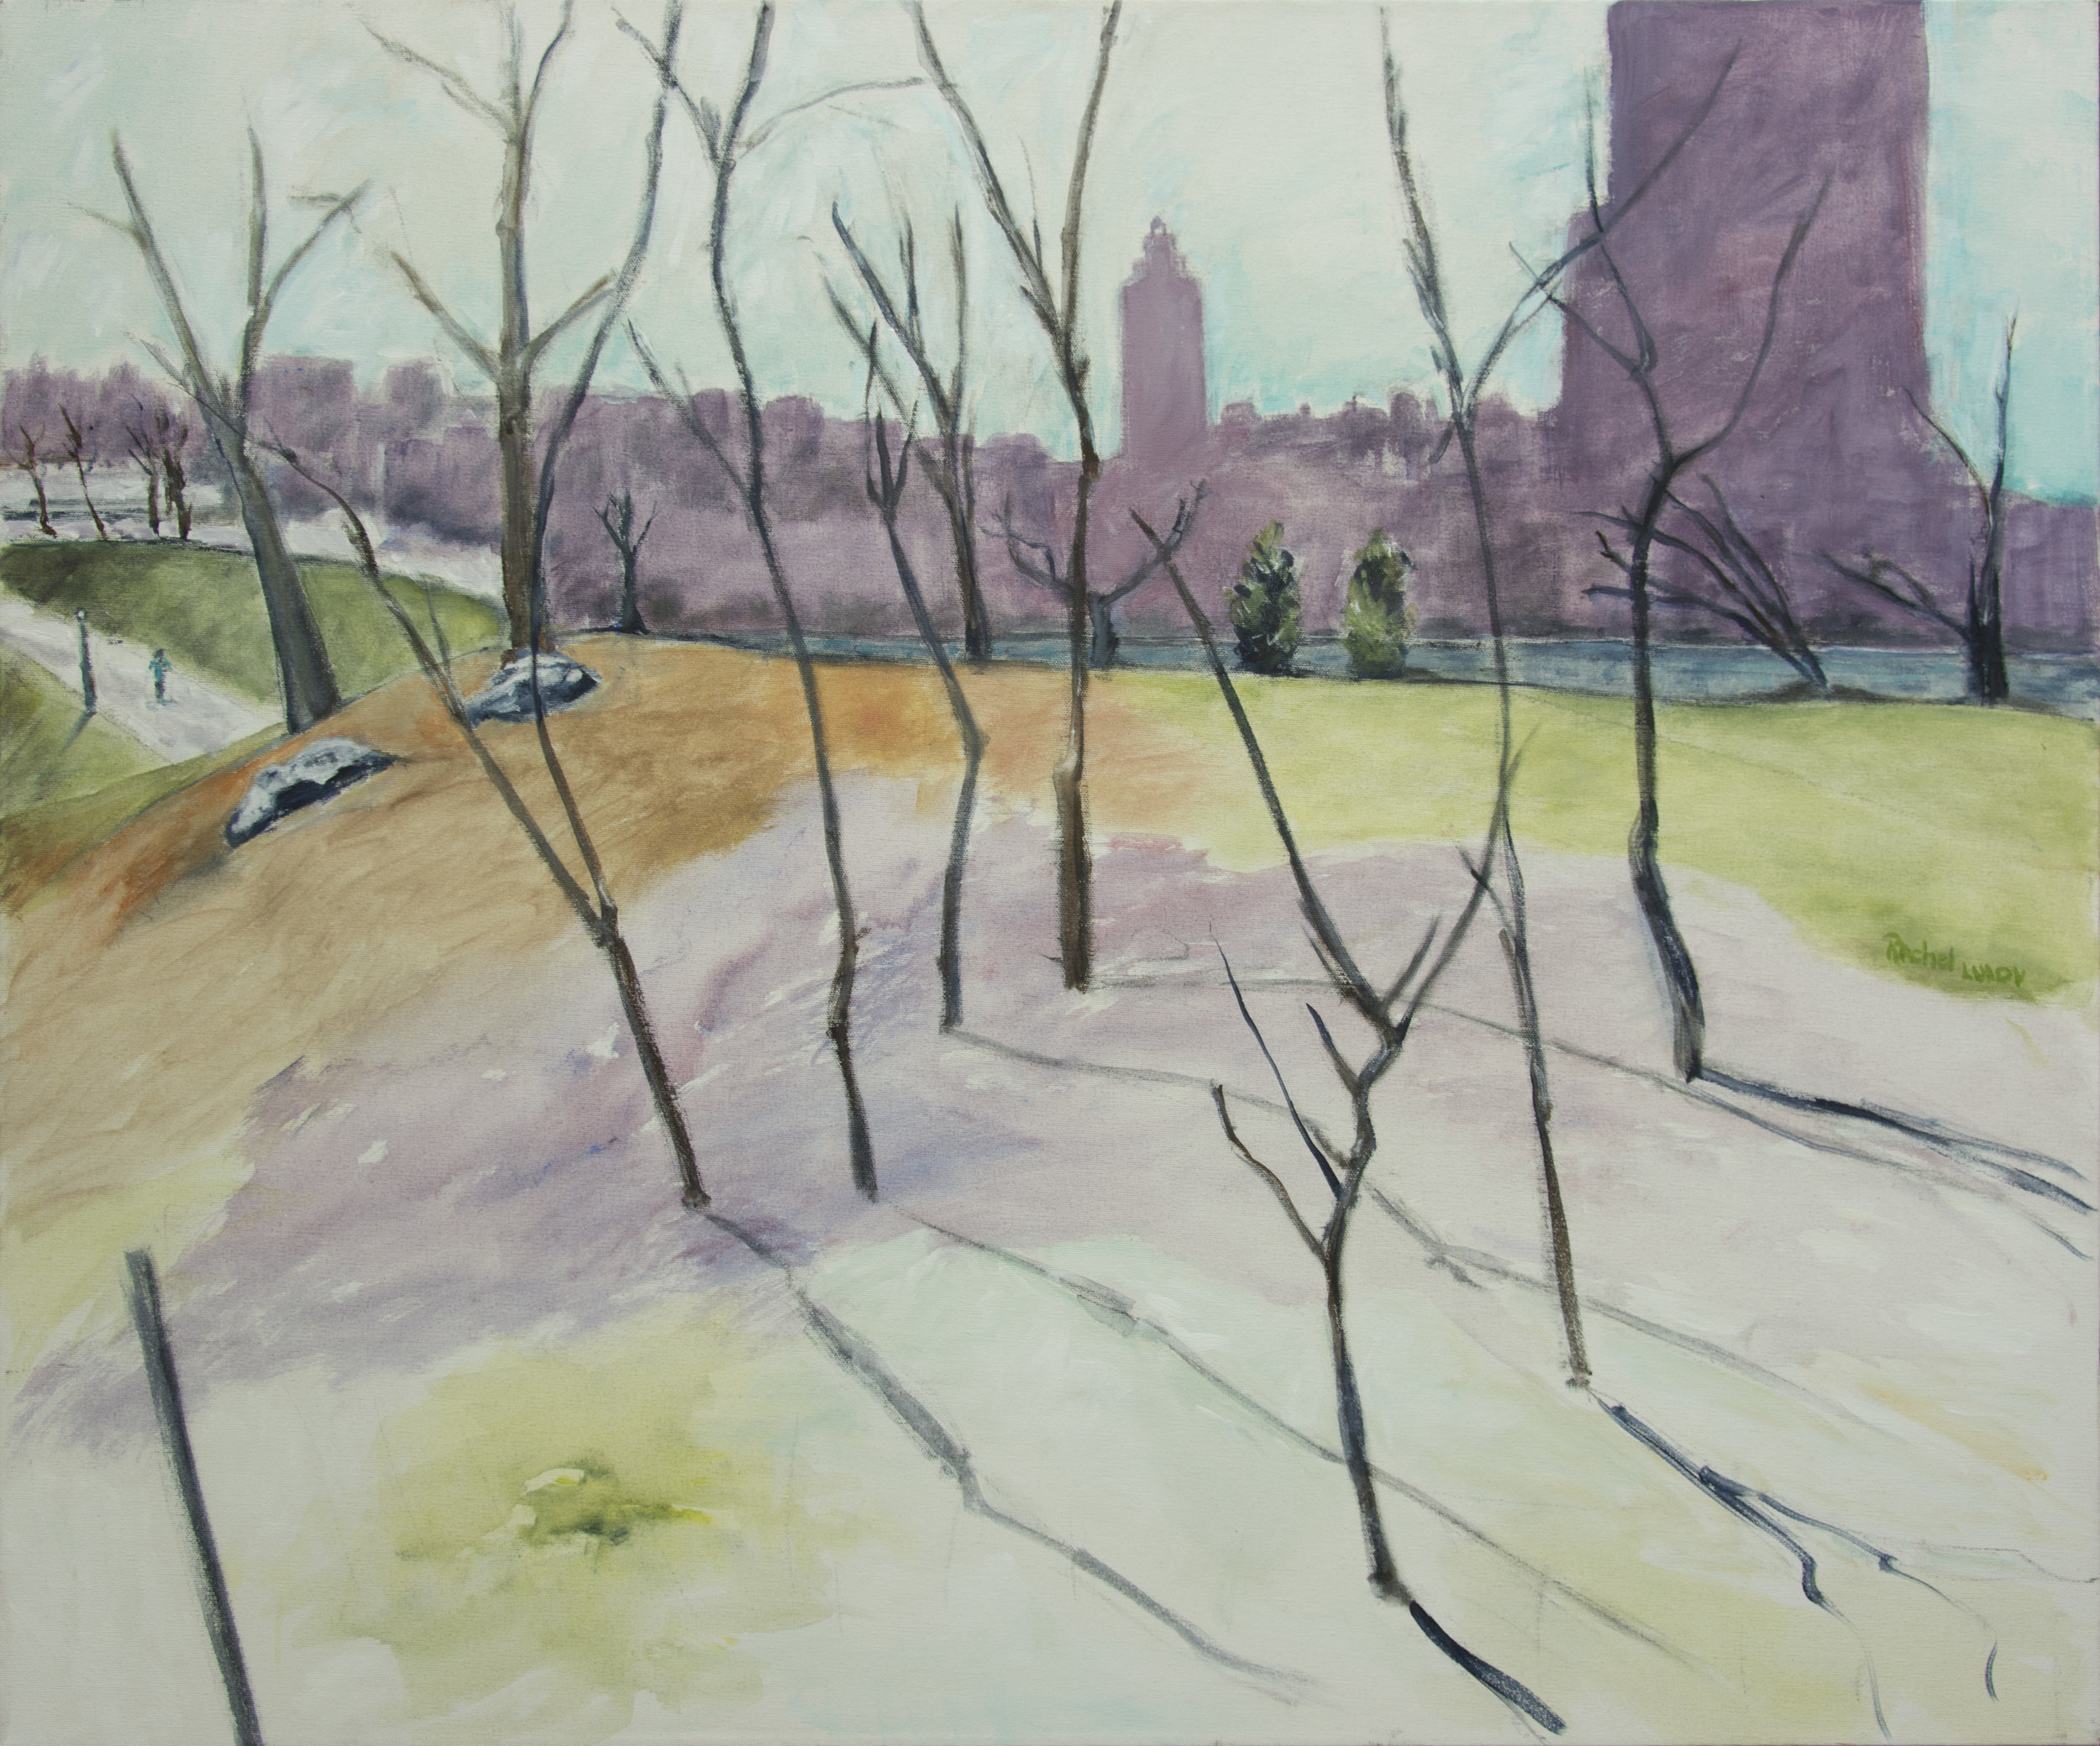 """Winter in Central Park acrylic on canvas 30""""x 36"""" Fear Follow From... acrylic on canvas 24"""" x 30"""" Rachel Lulov Segall, in a private collection."""